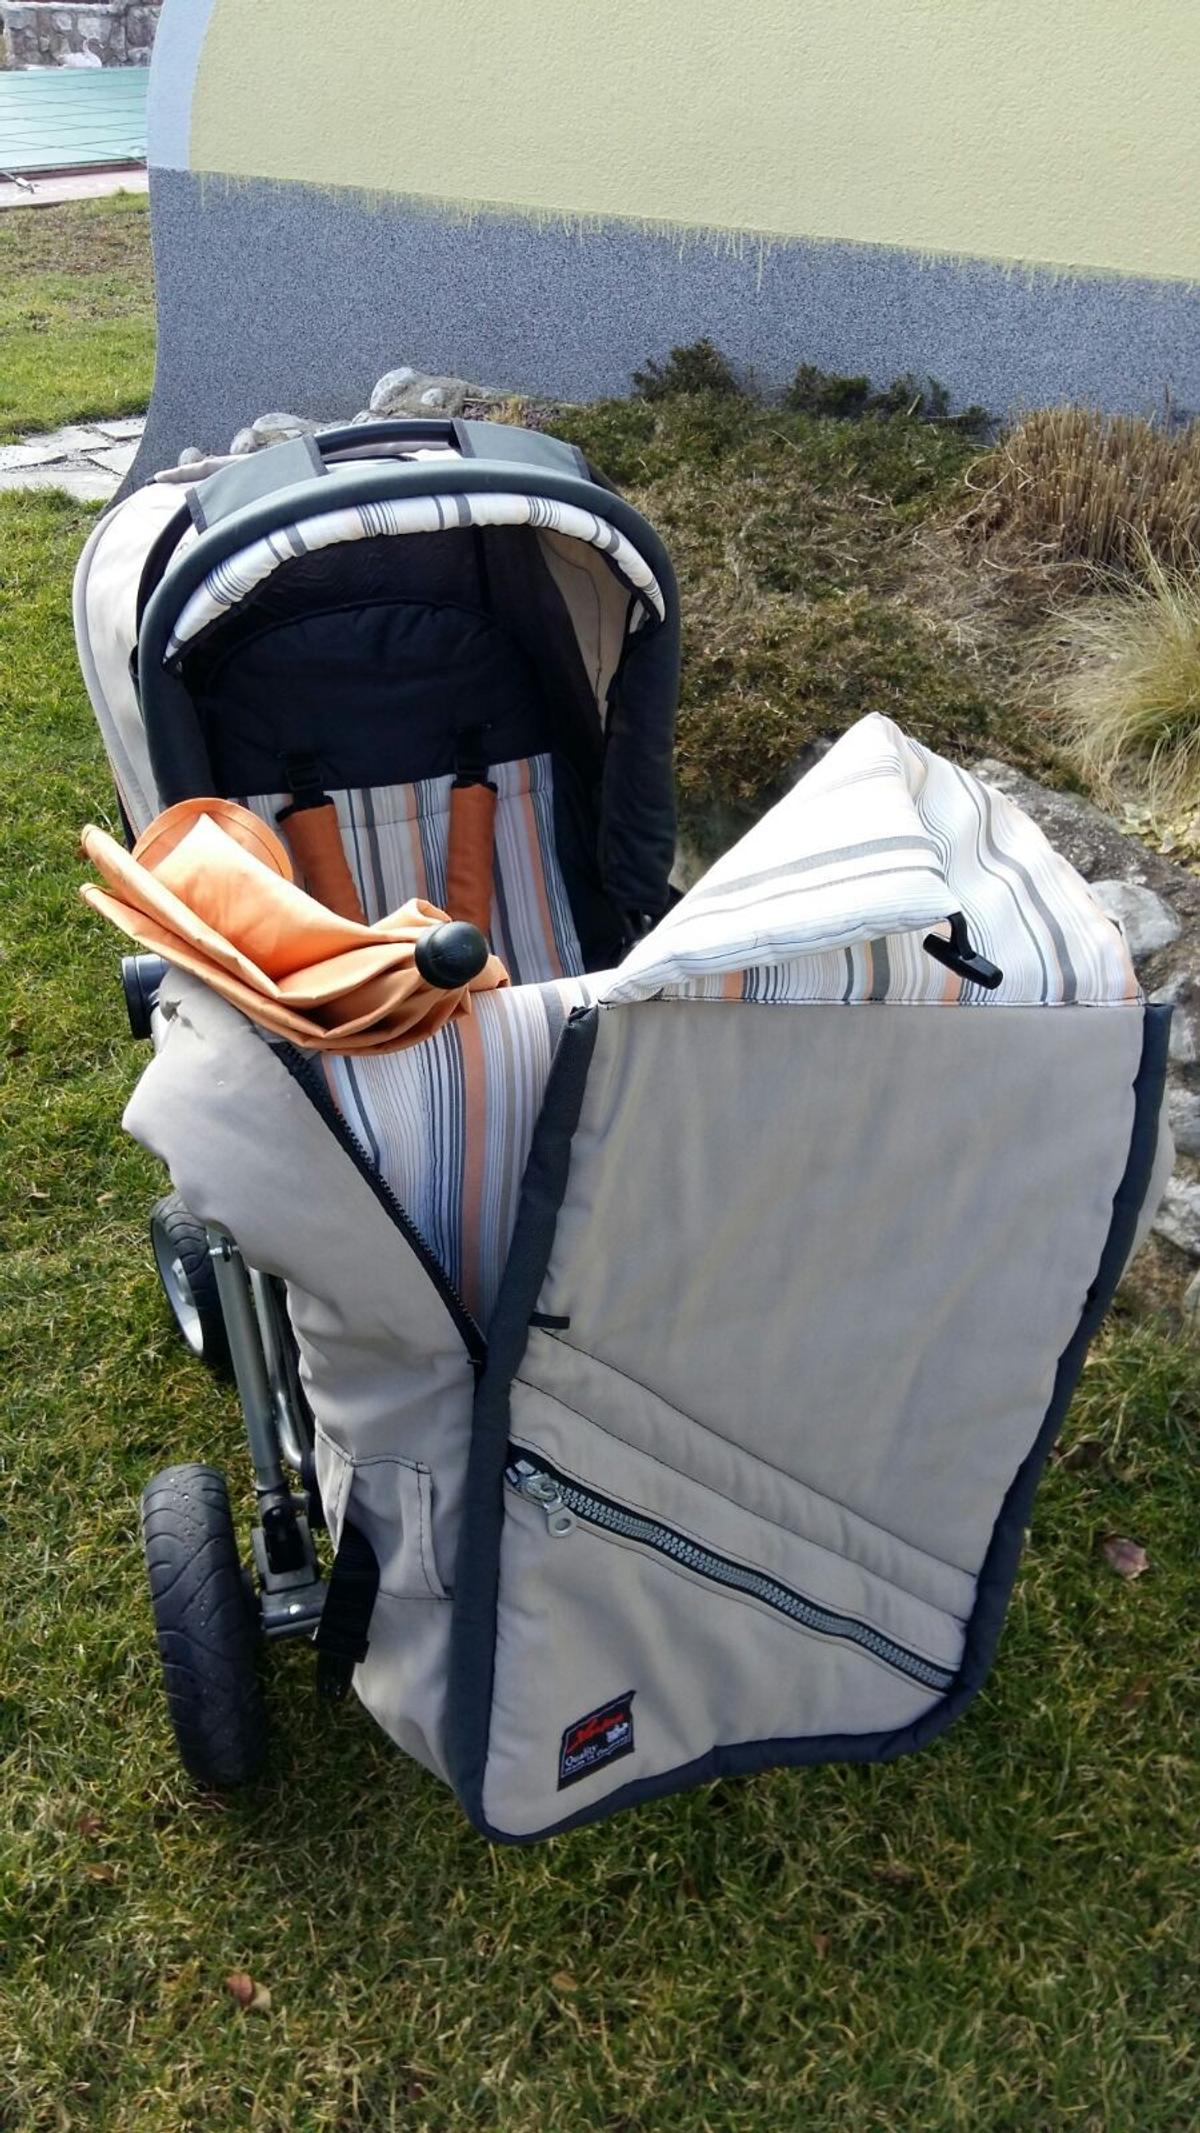 Hartan Topline Liegefläche Kinderwagen Hartan Racer In 4540 Bad Hall For 65 00 For